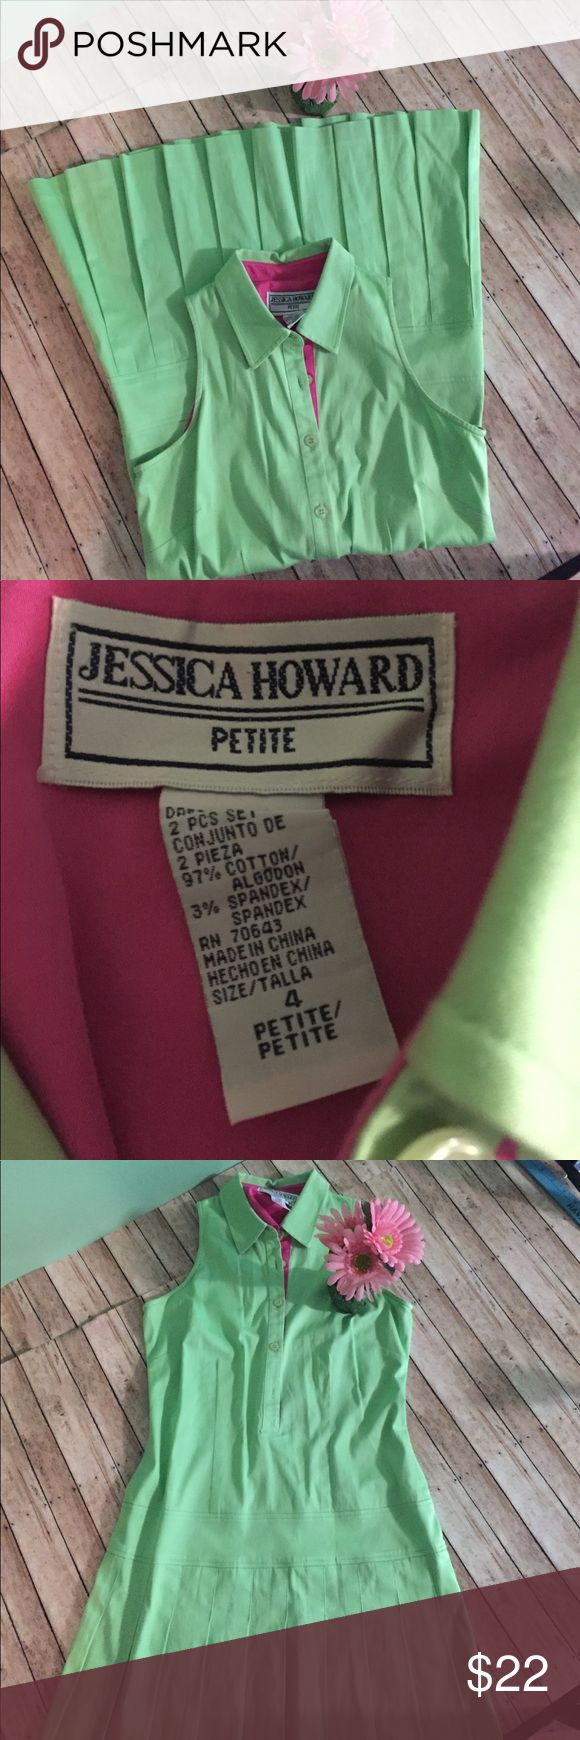 "Jessica Howard petite summer pleated dress The perfect summer dress!  Pleated skirt. Buttons on top and a peek of pink for that preppy look. Length 33"". Waist 15"". Bust 17"" Jessica Howard Dresses Mini"